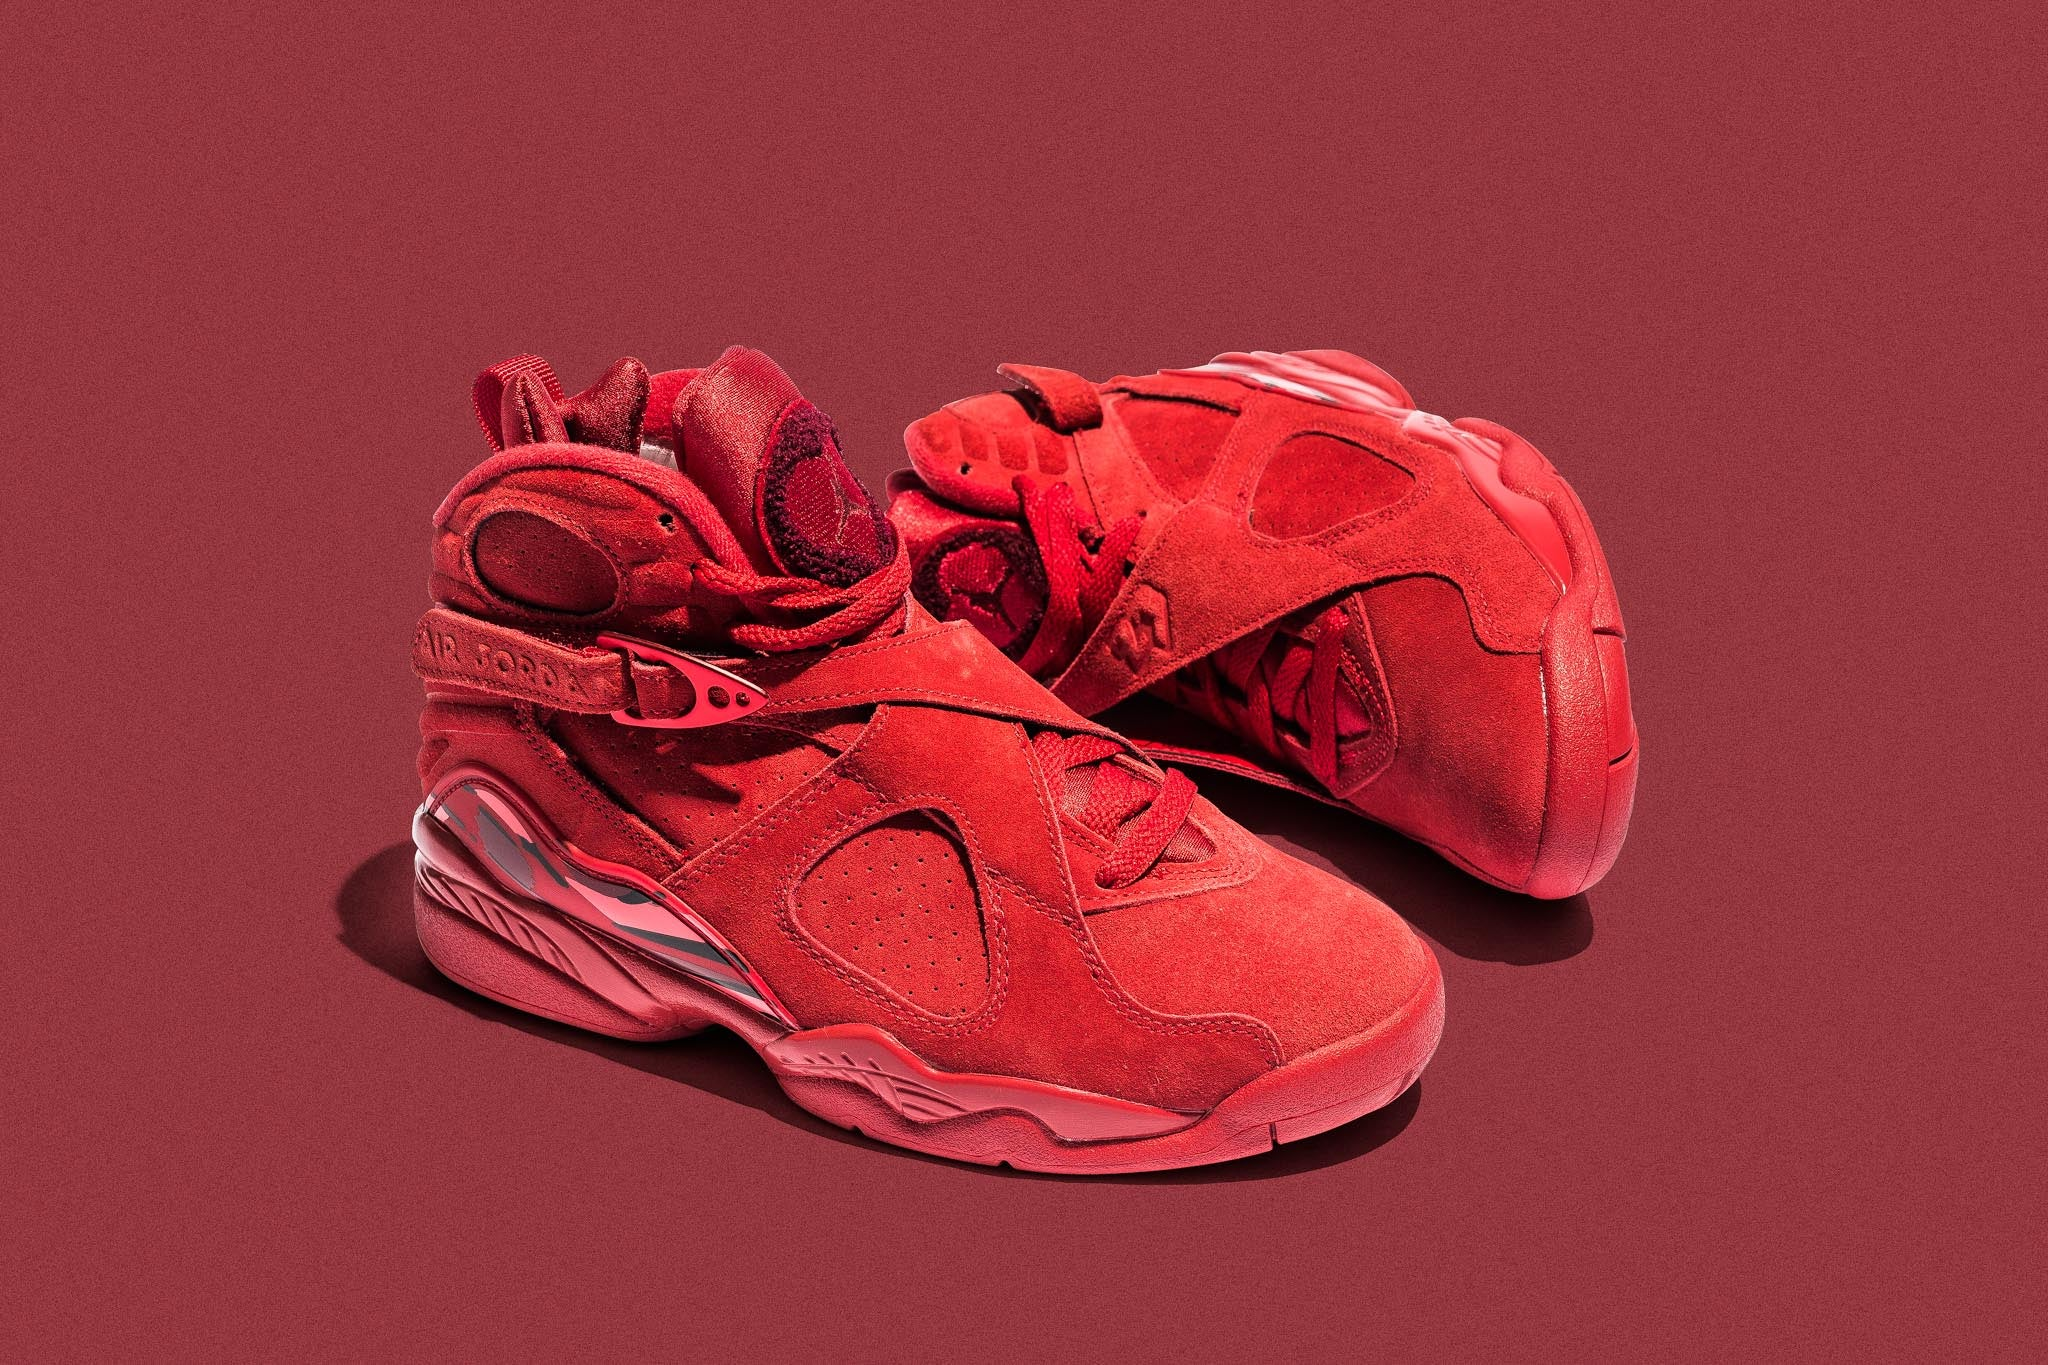 finest selection 3313d 39418 Air Jordan 8 Valentines Day 02.09.18 – Capsule Online